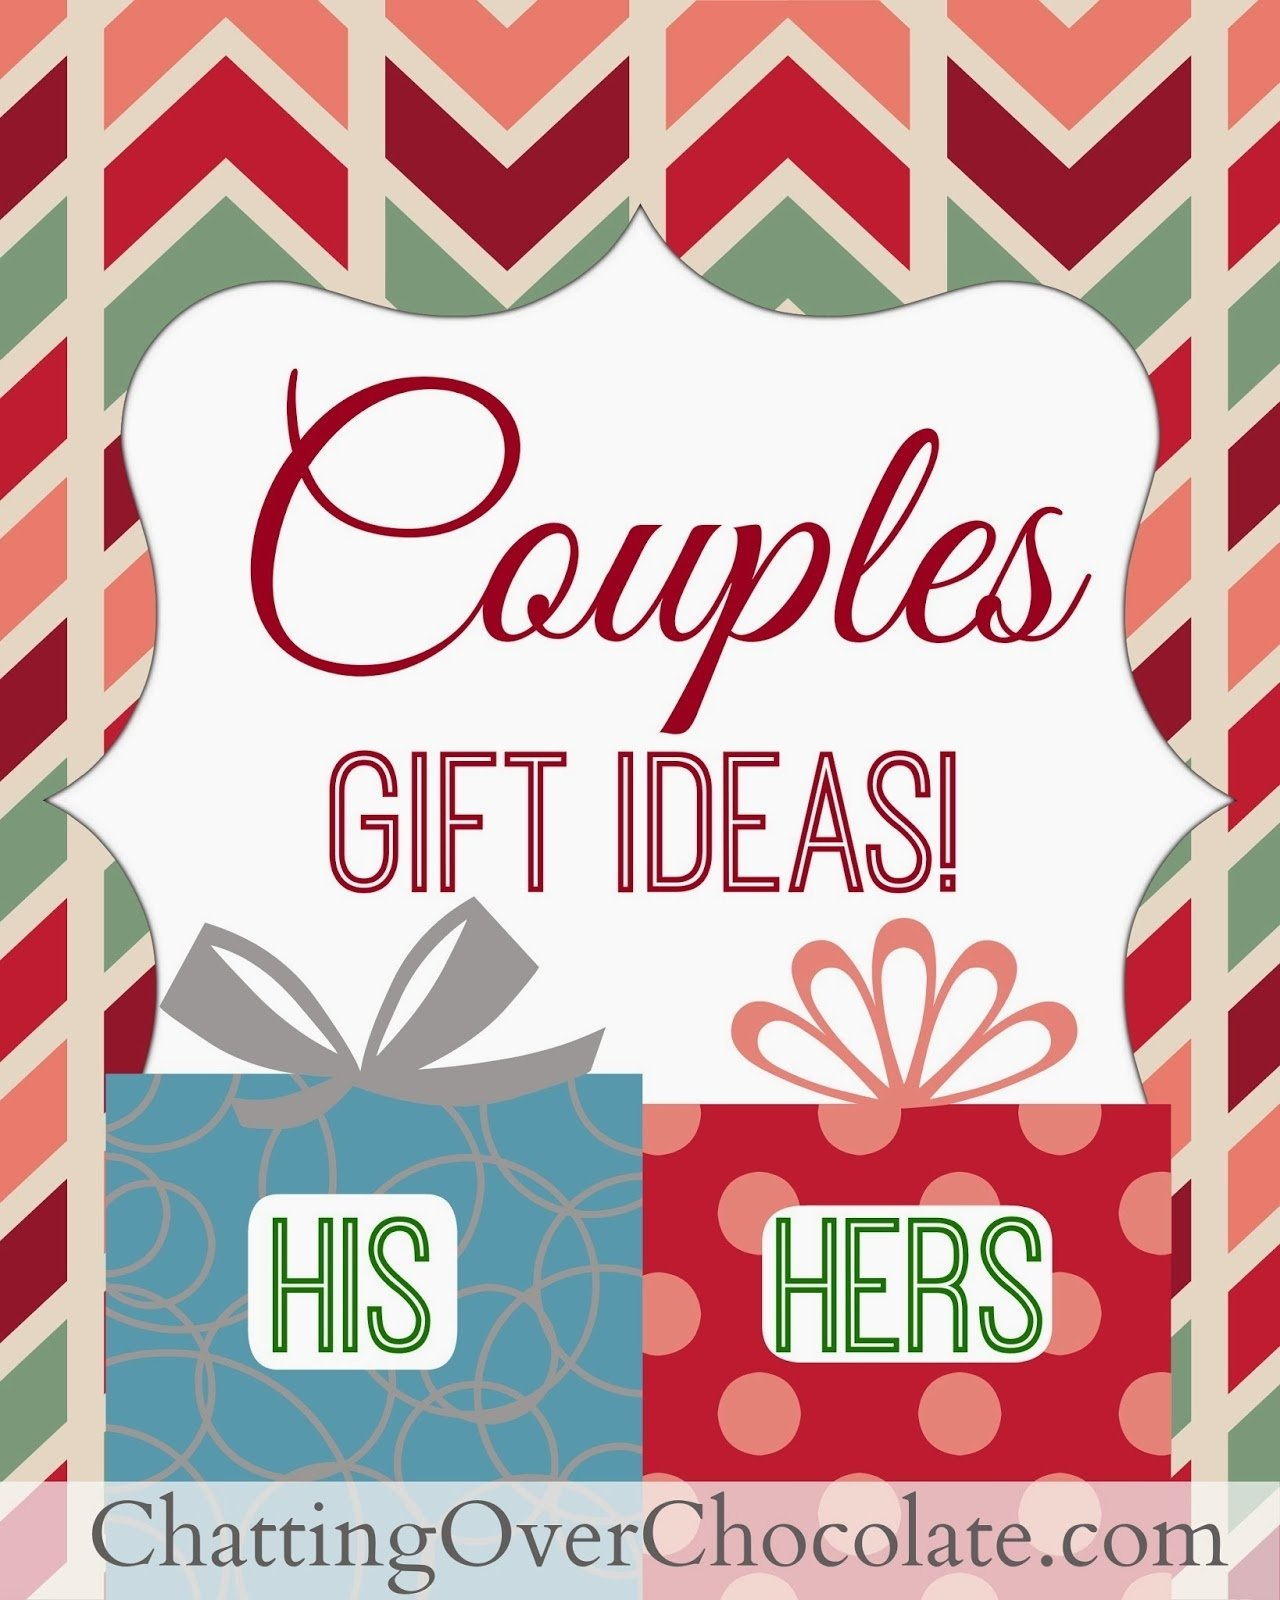 10 Lovely Gift Ideas For Couples For Christmas chatting over chocolate his hers gift ideas couples gift giving 7 2020